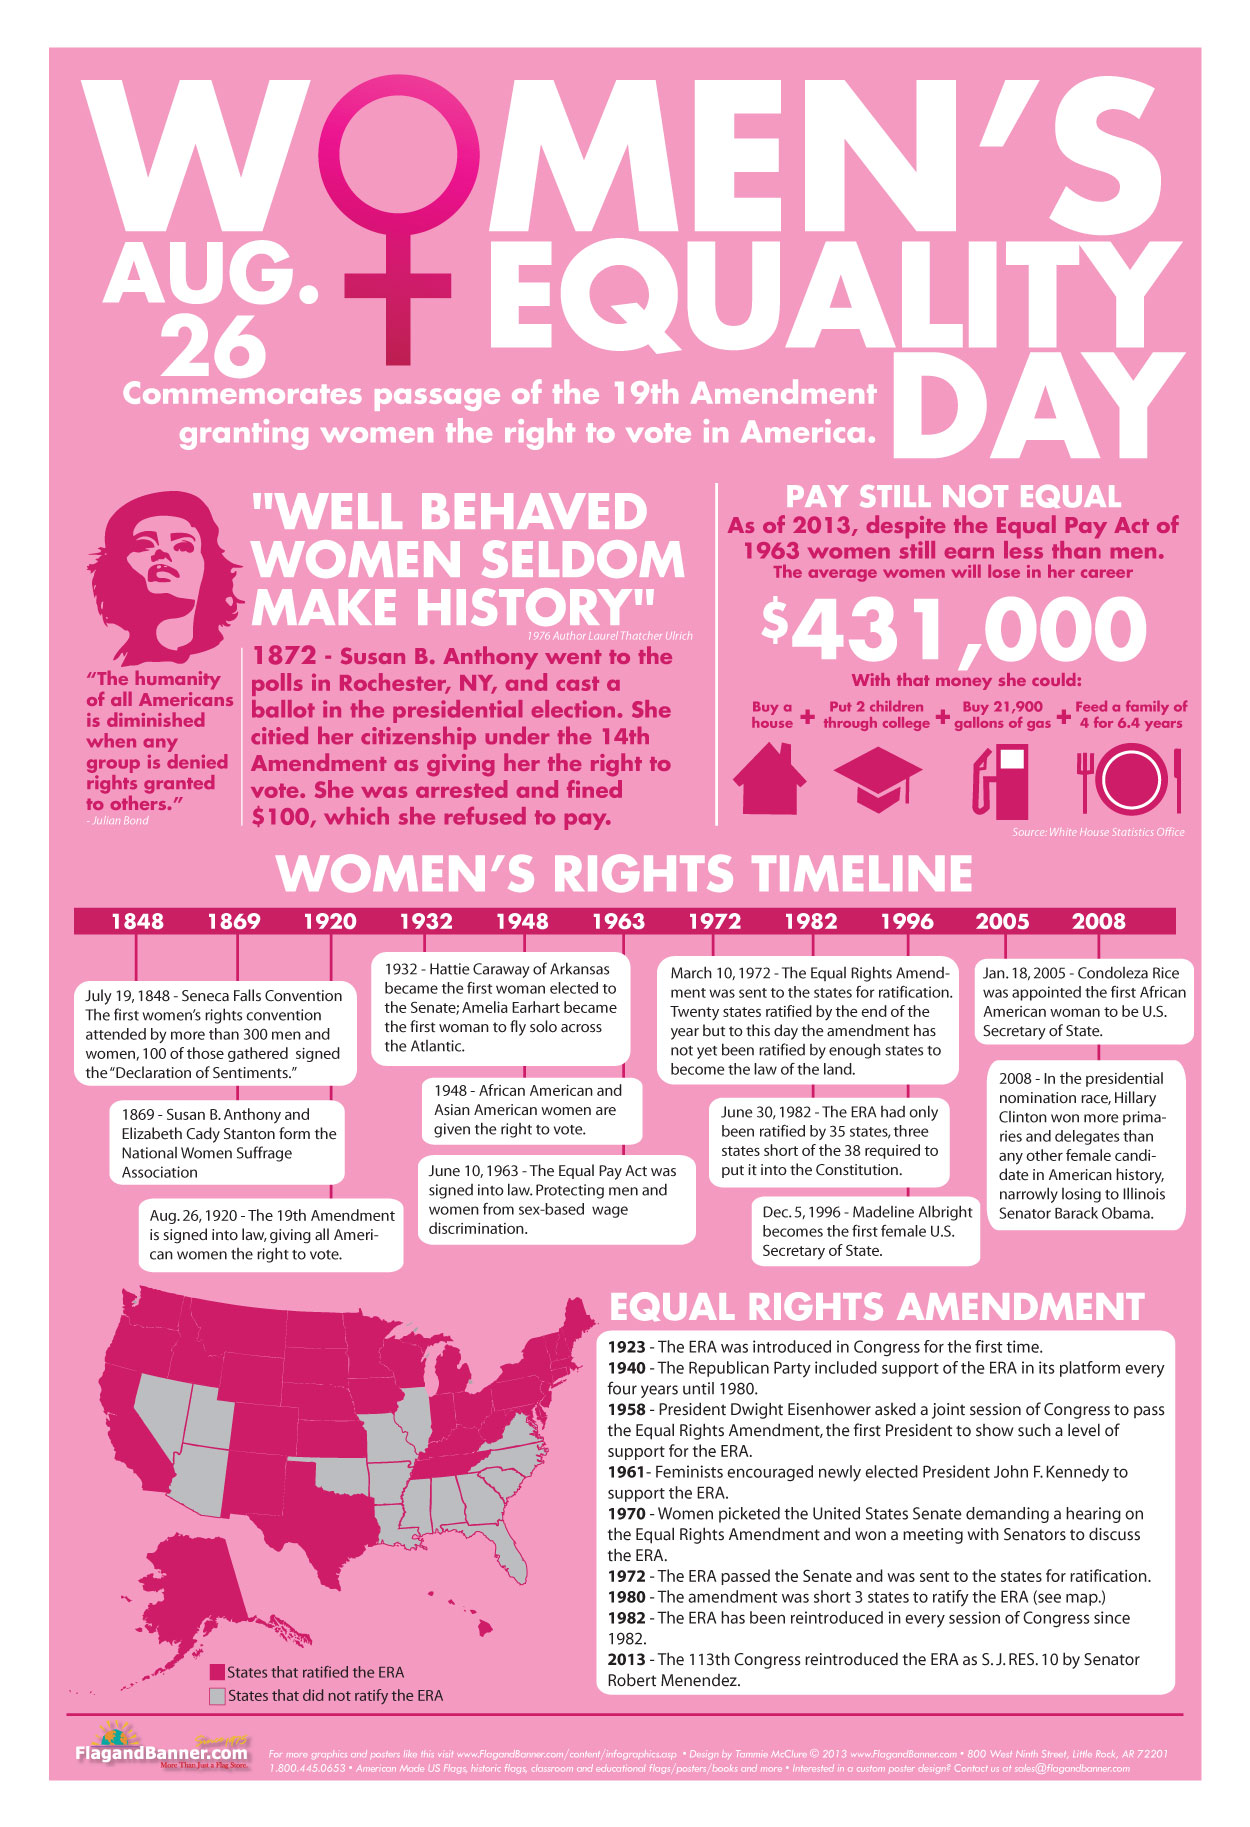 Women's Equality Day Facts-Infographic